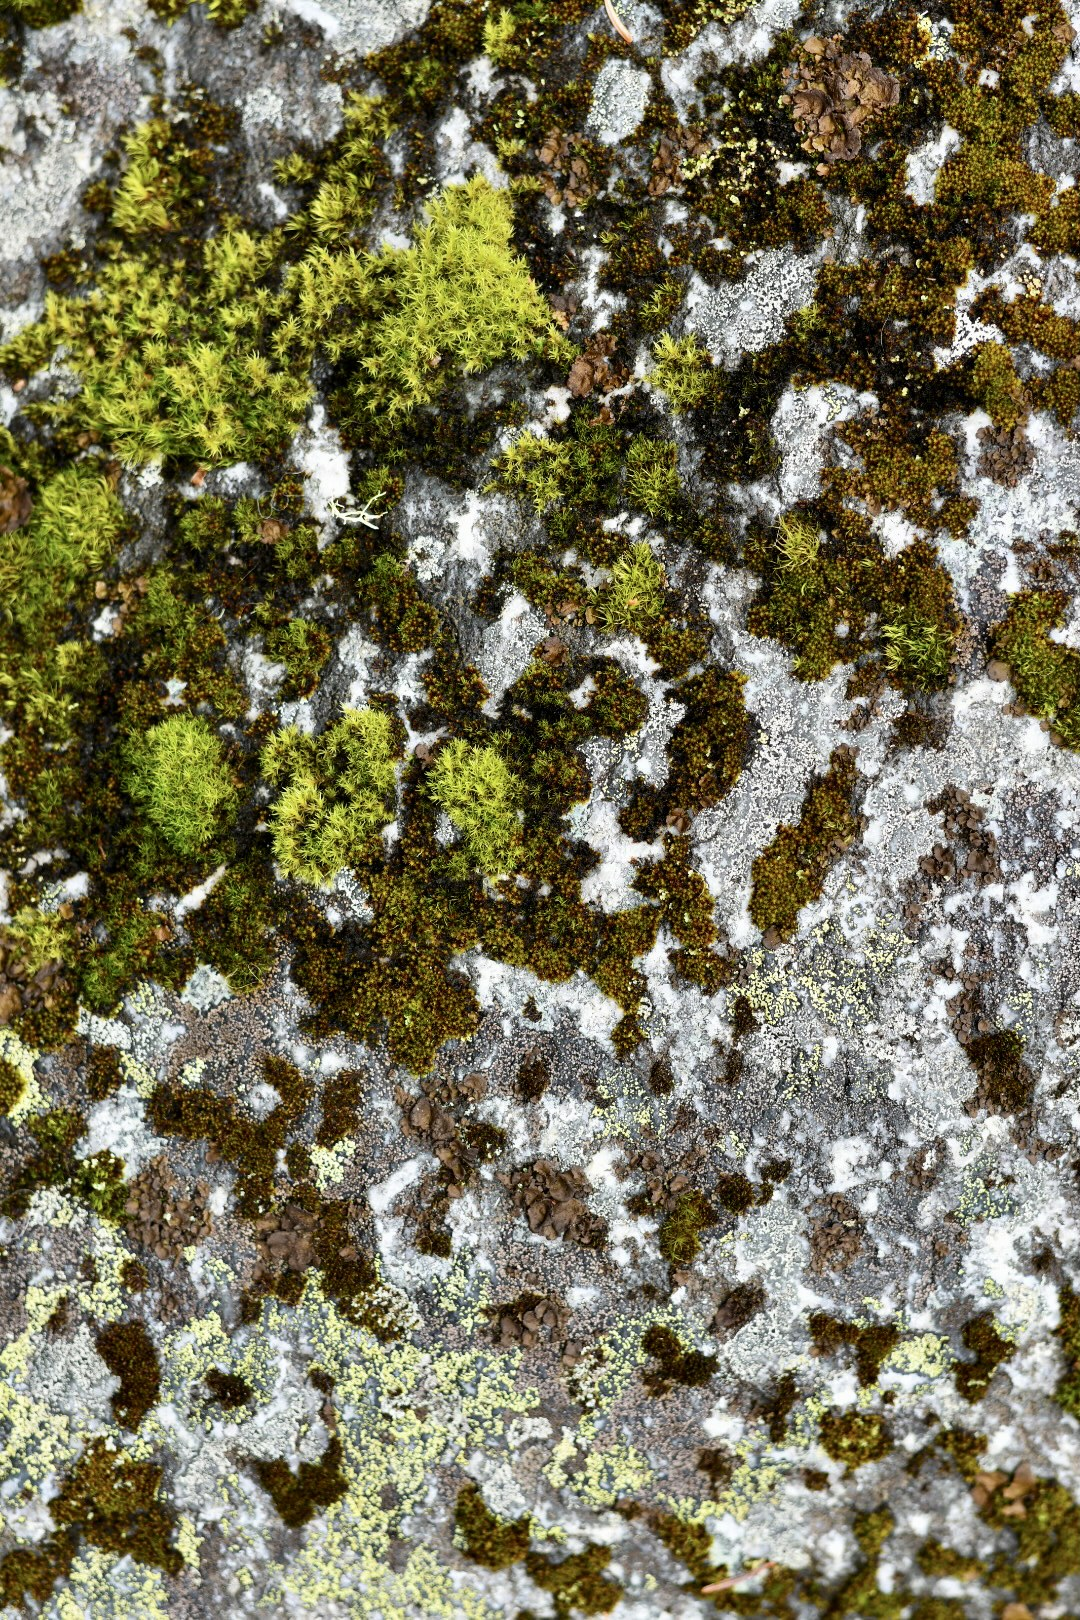 Close up of a river rock texture with spots of green moss. 2021. Taryn Okesson. Digital Photography. White Mountain National Forest, New Hampshire.